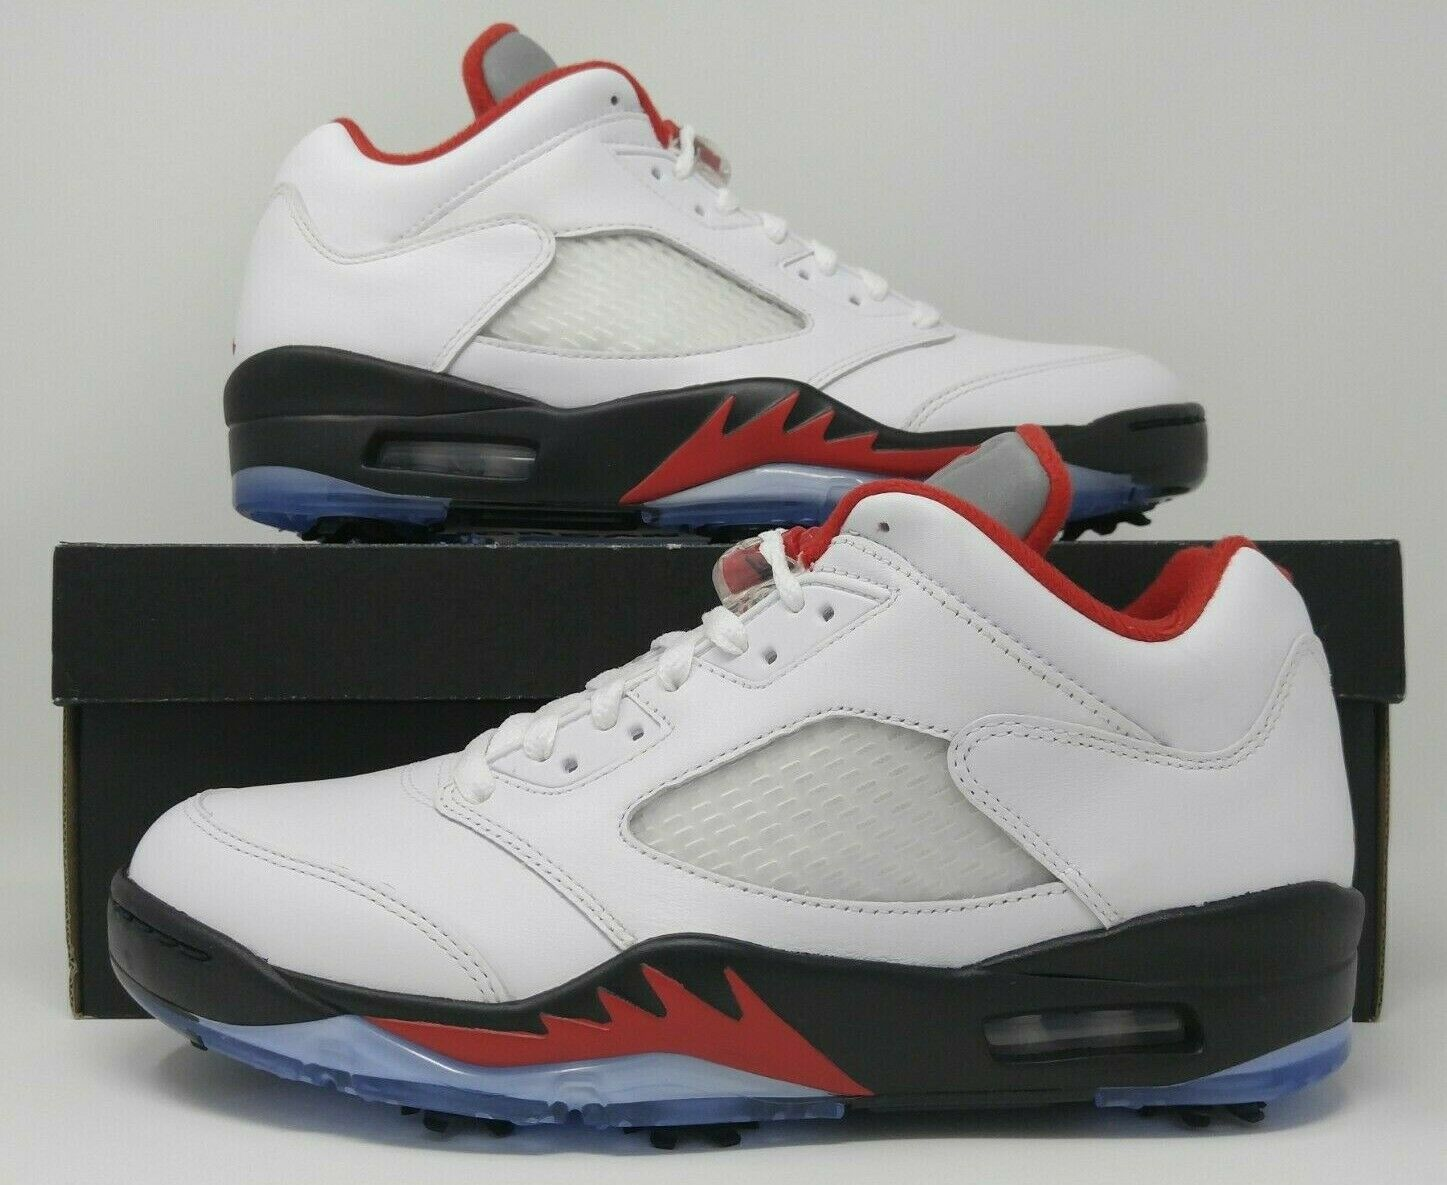 Jordan 5 Retro Low Golf Fire Red Silver Tongue